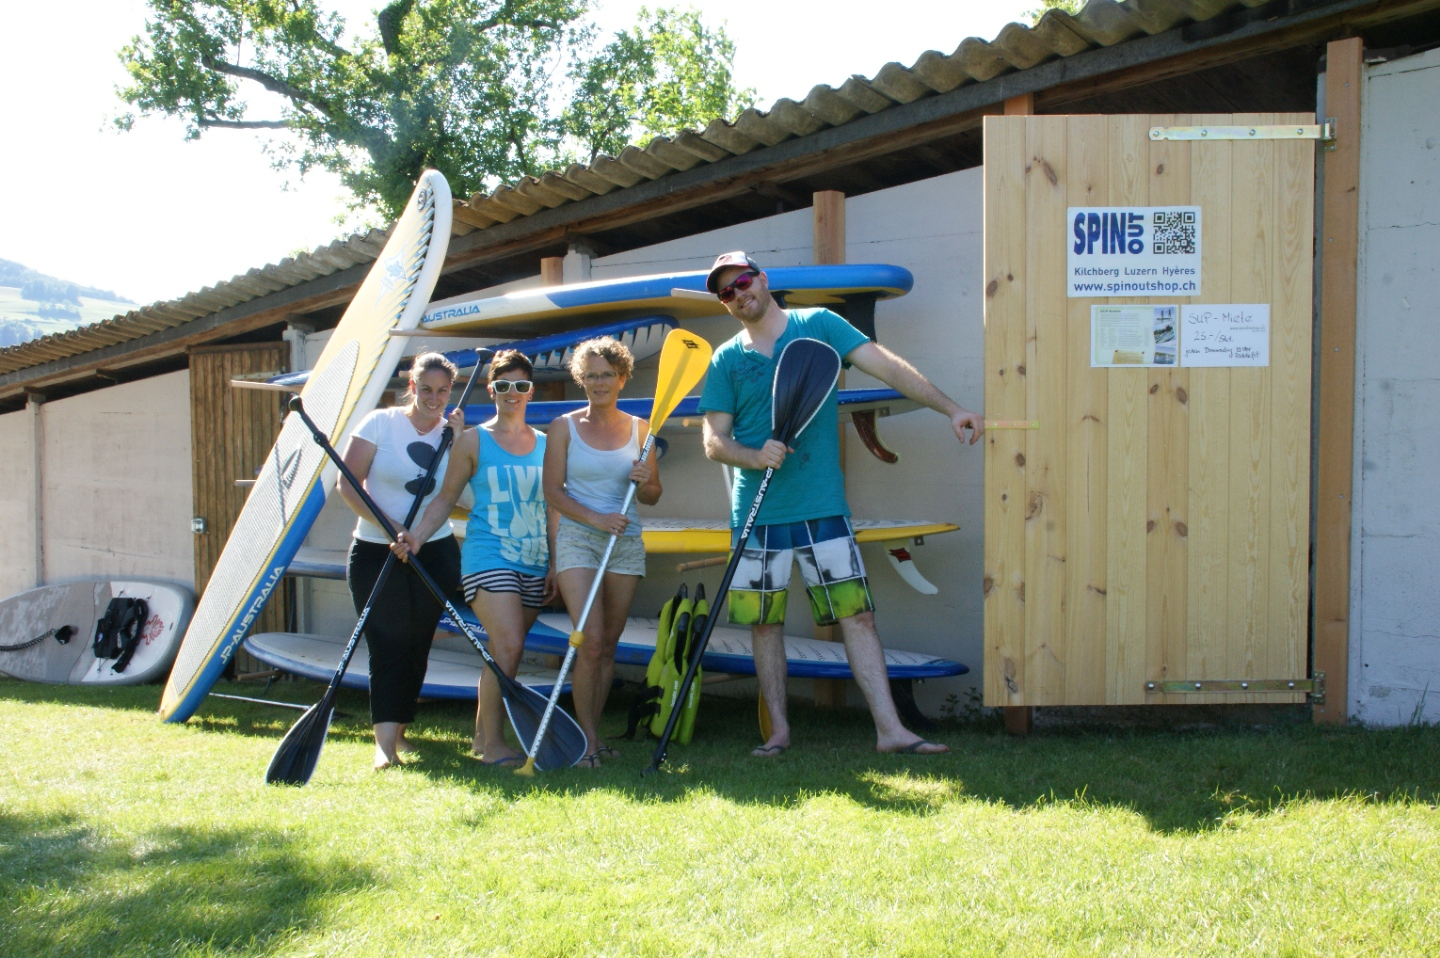 SUP Station Spinout in der Strandbad Seerose